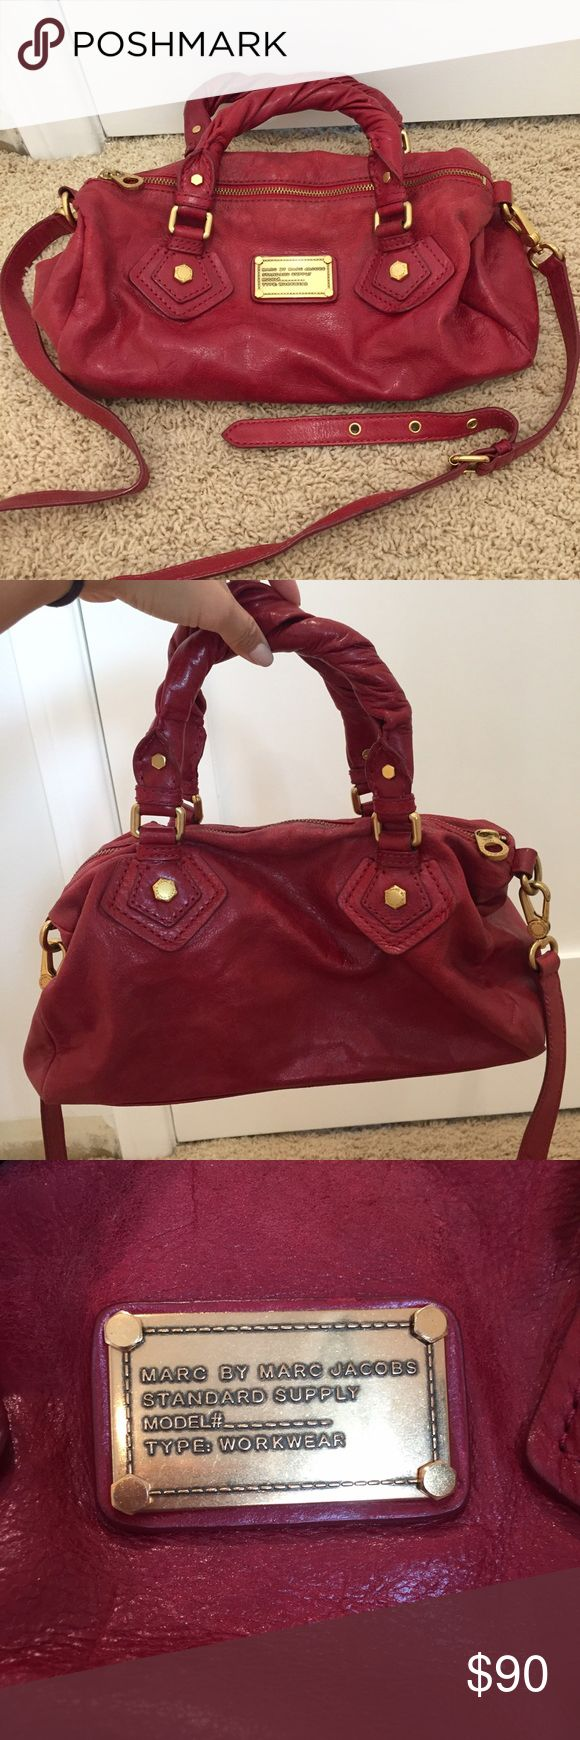 Marc by Marc Jacobs purse Red Marc by Marc Jacobs purse. Can be worn on shoulder or crossbody or as handbag with short handles Marc by Marc Jacobs Bags Crossbody Bags